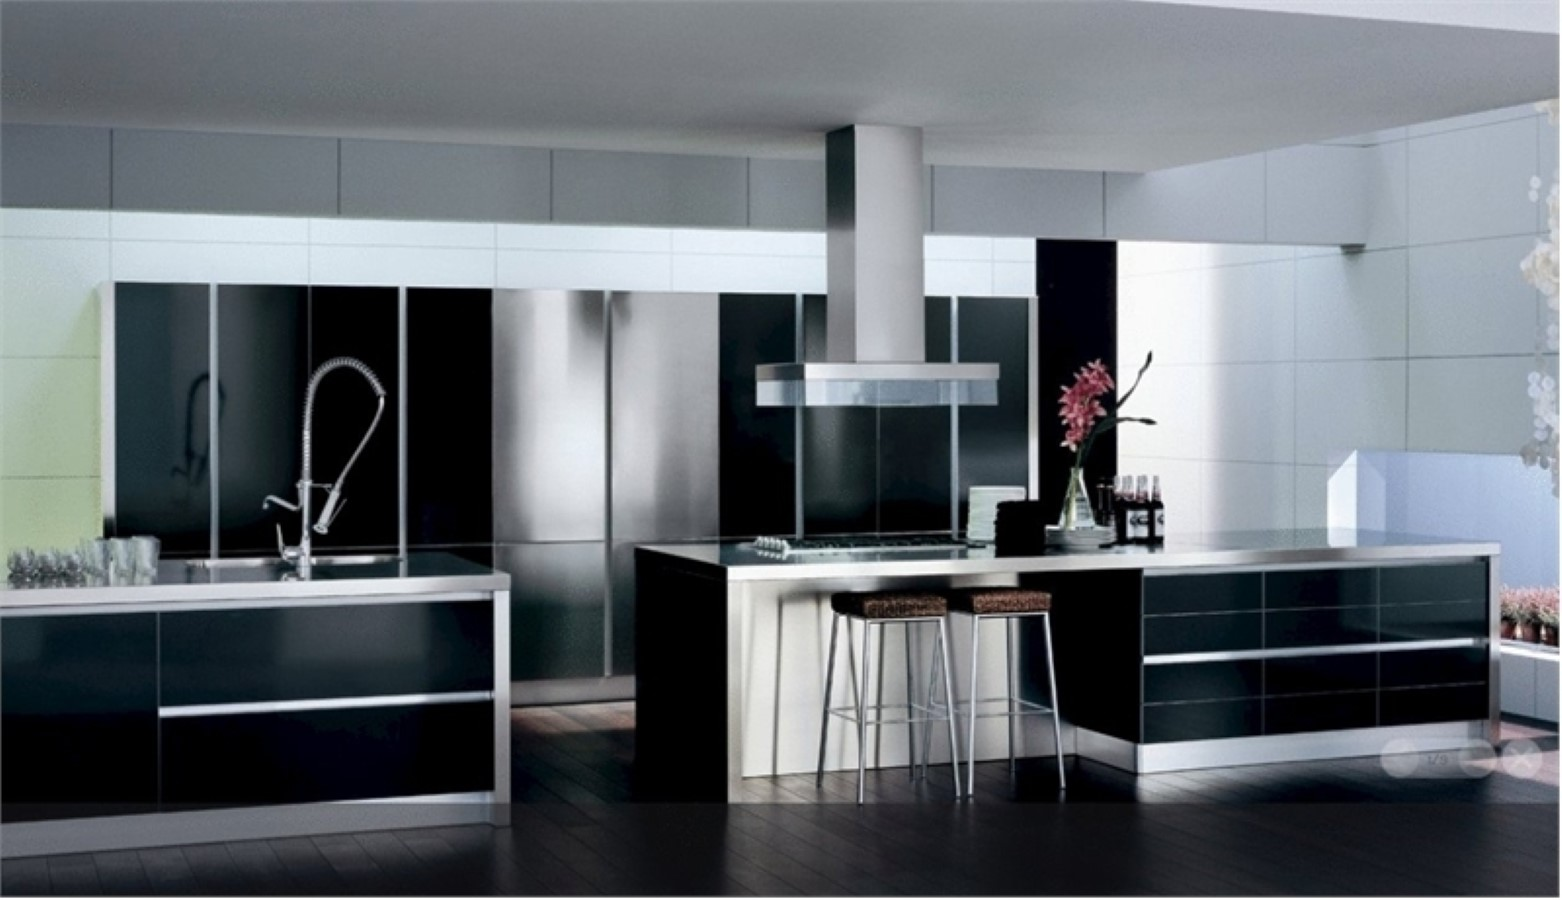 Black and white kitchen decor to feed exclusive and modern for Black and white kitchens photos